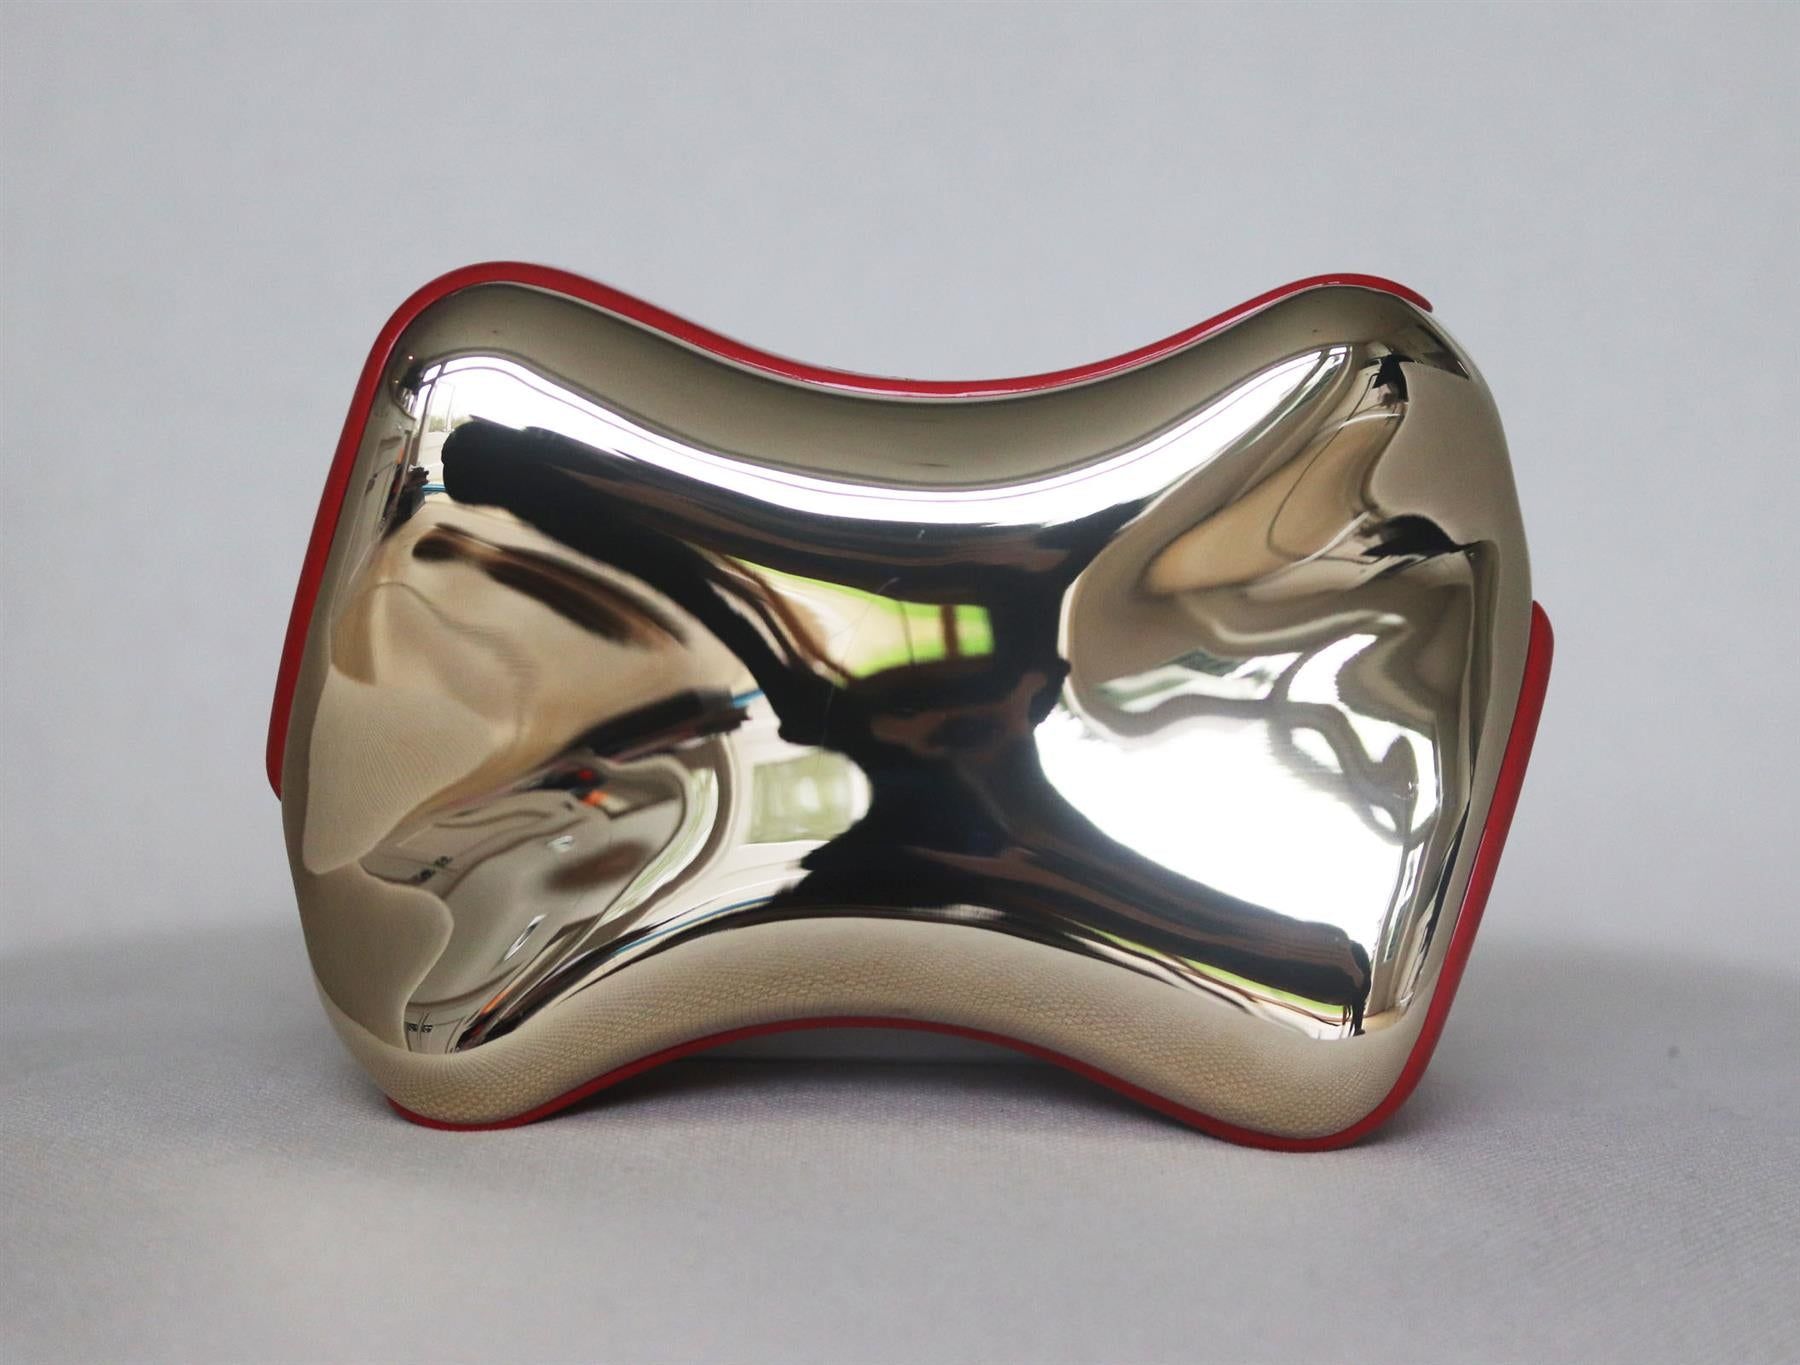 CHRISTIAN LOUBOUTIN SHOEPEAKS LACQUERED TRIMMED METAL CLUTCH